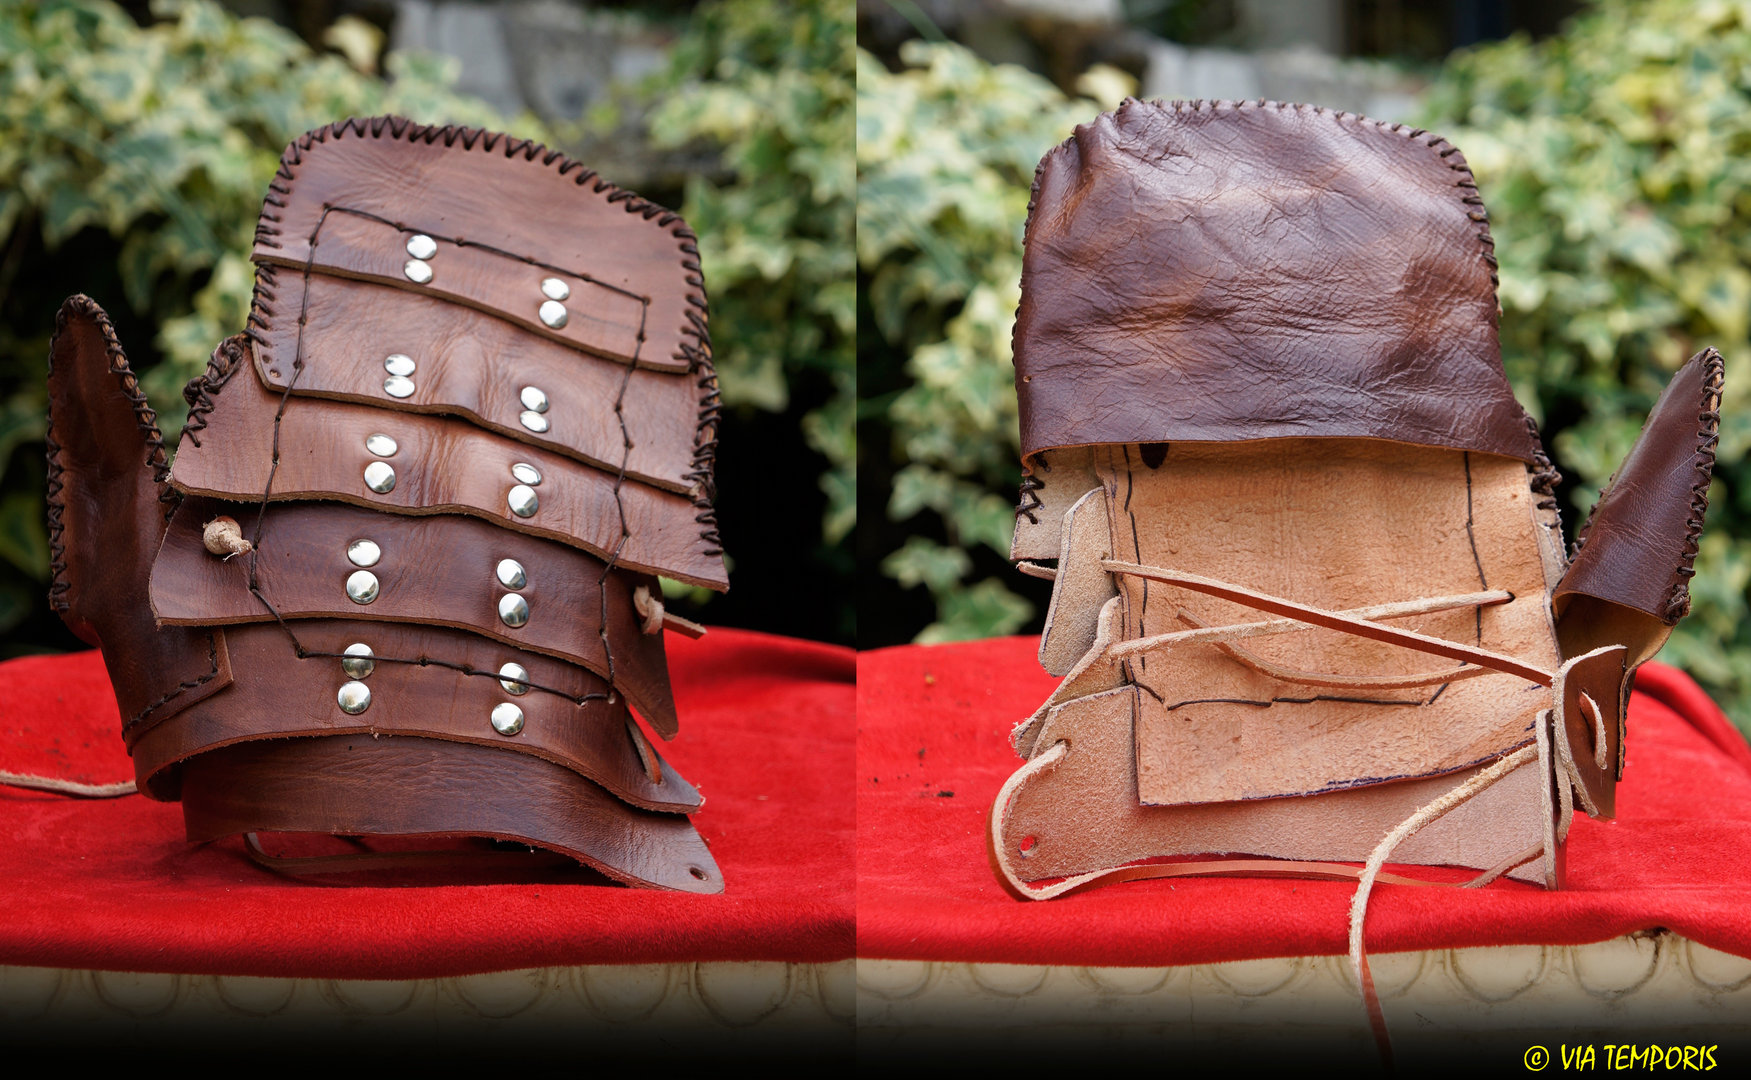 RETIAIRE GLADIATOR GAUNTLET IN LEATHER - RIGHT HAND